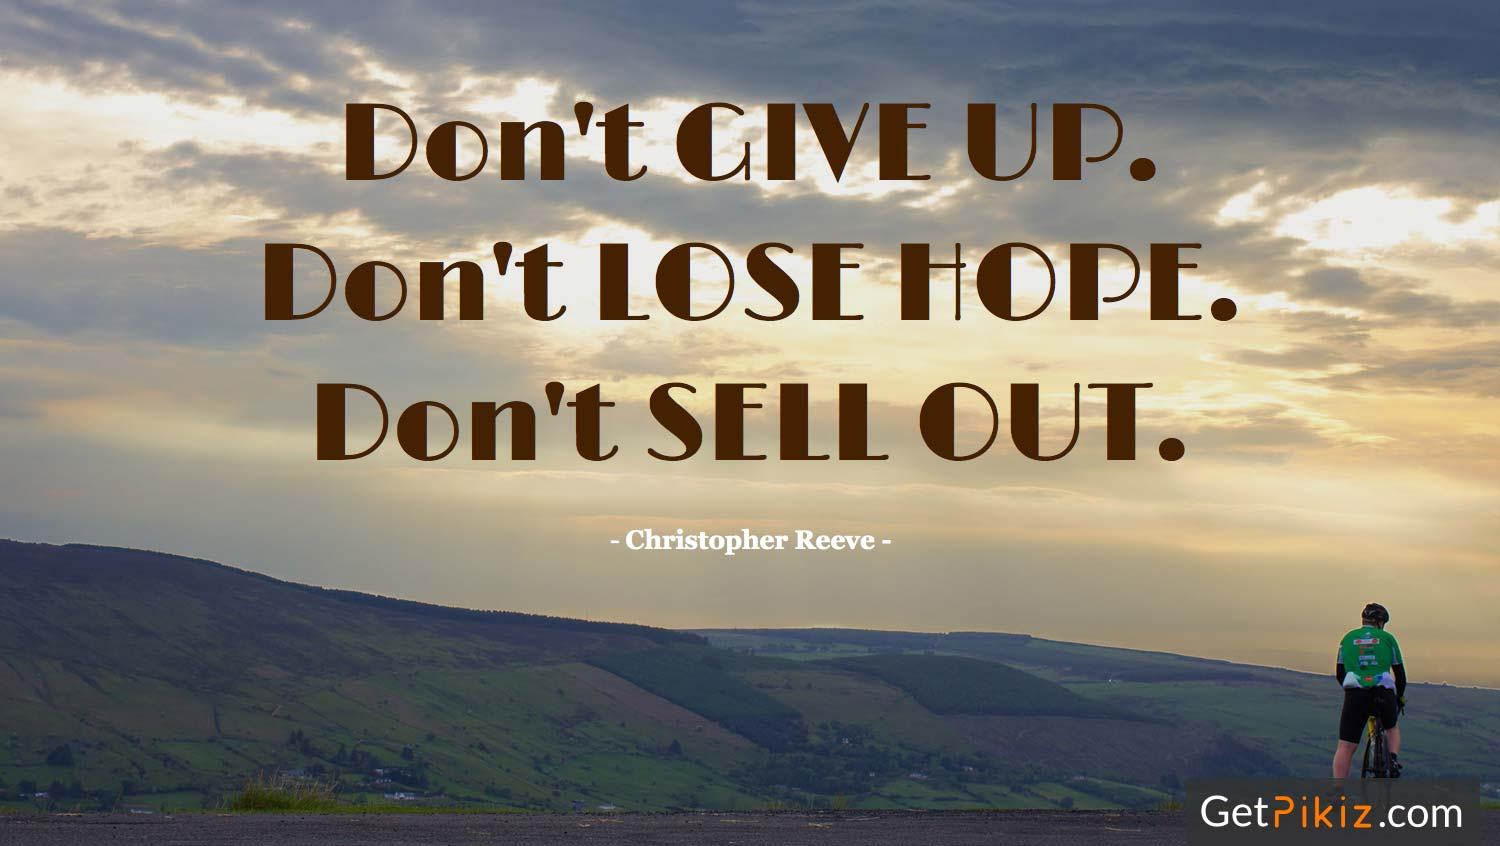 Don't give up. Don't lose hope. Don't sell out. - Christopher Reeve